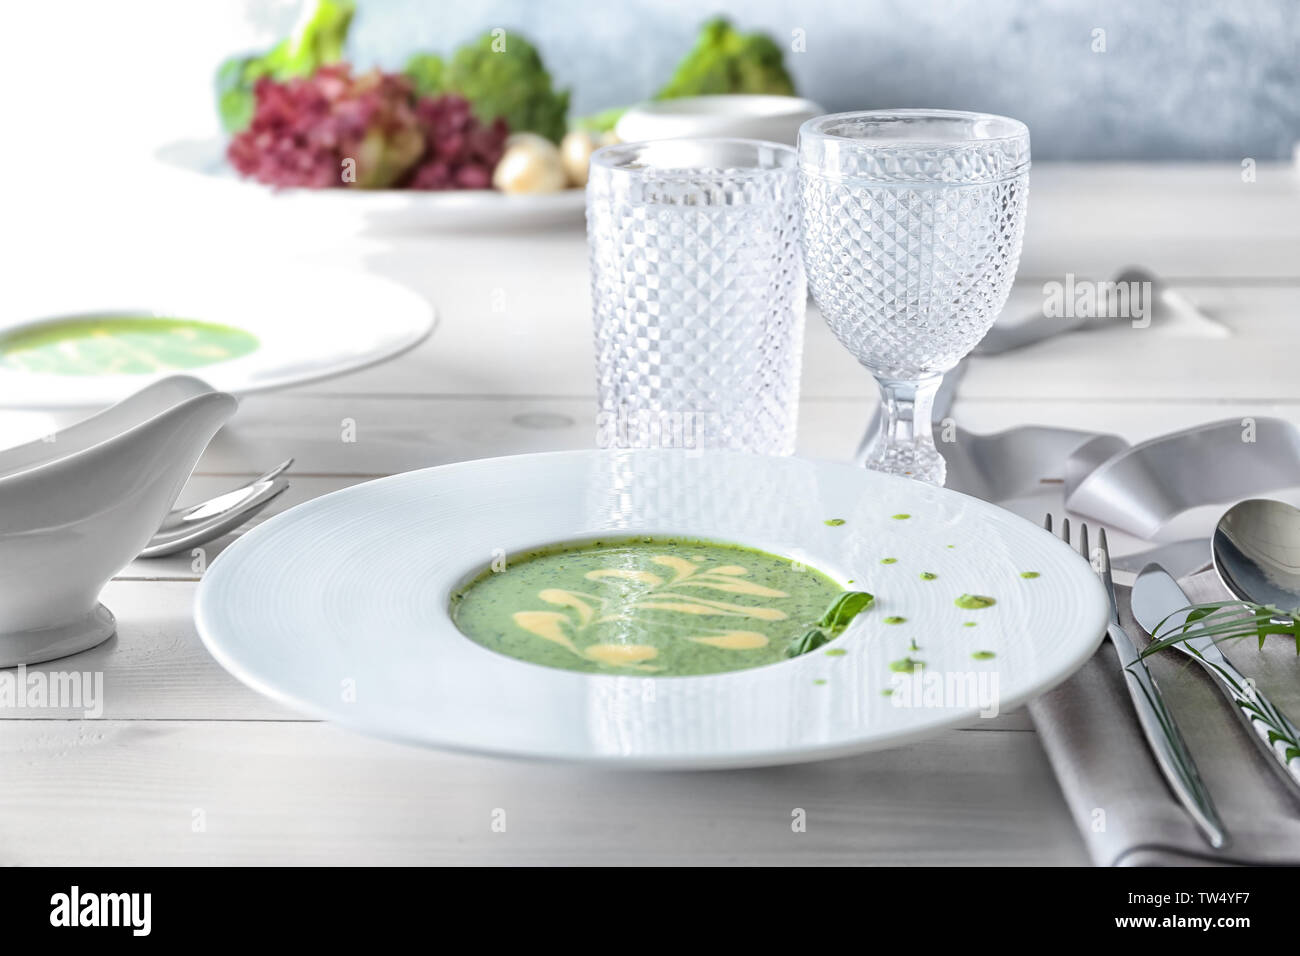 Plate with delicious broccoli cheese soup on table - Stock Image